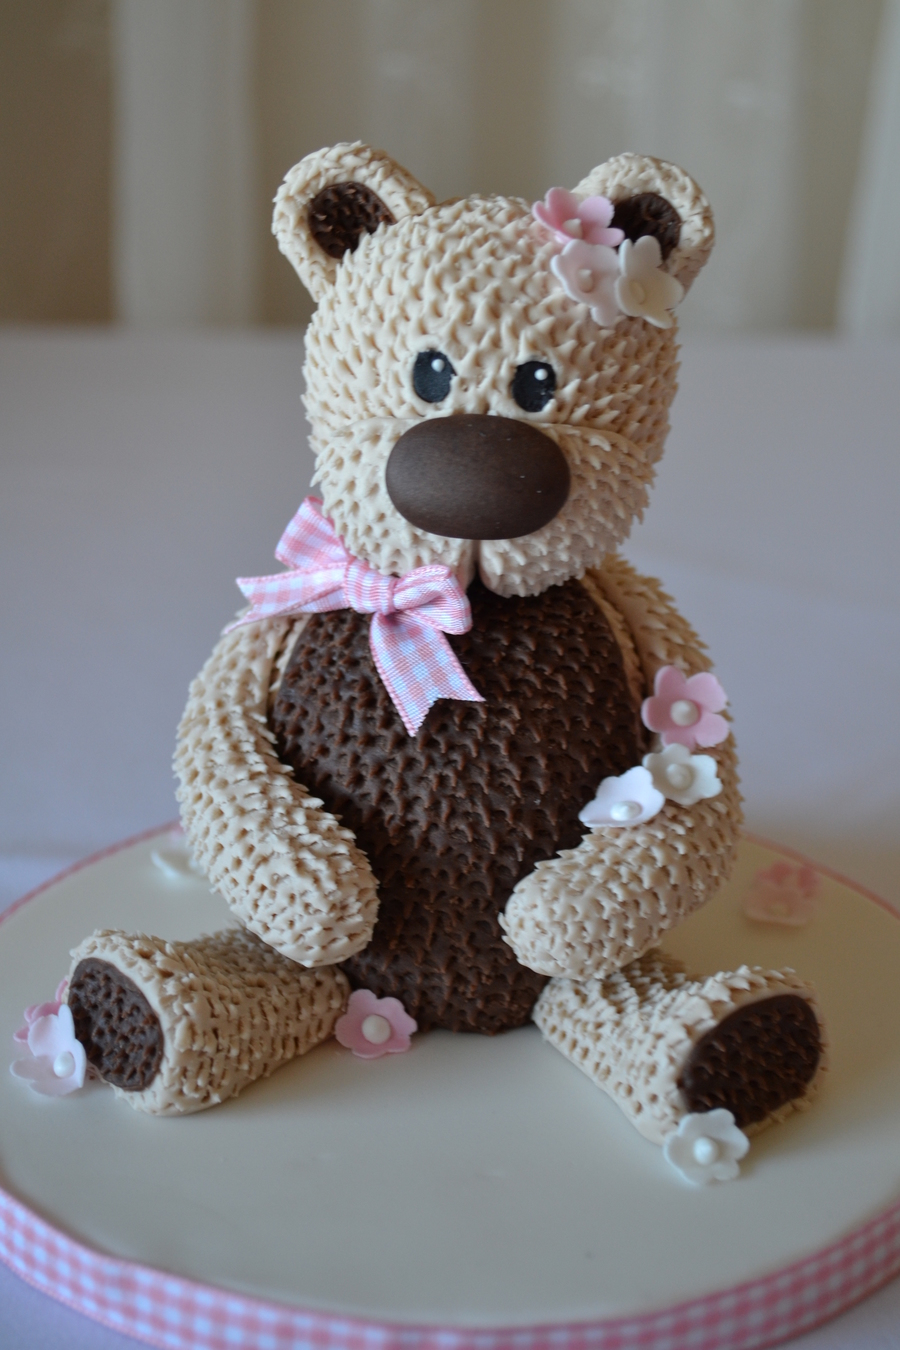 Cute Bear Wedding Cake Toppers Teddy Topper Cakecentral